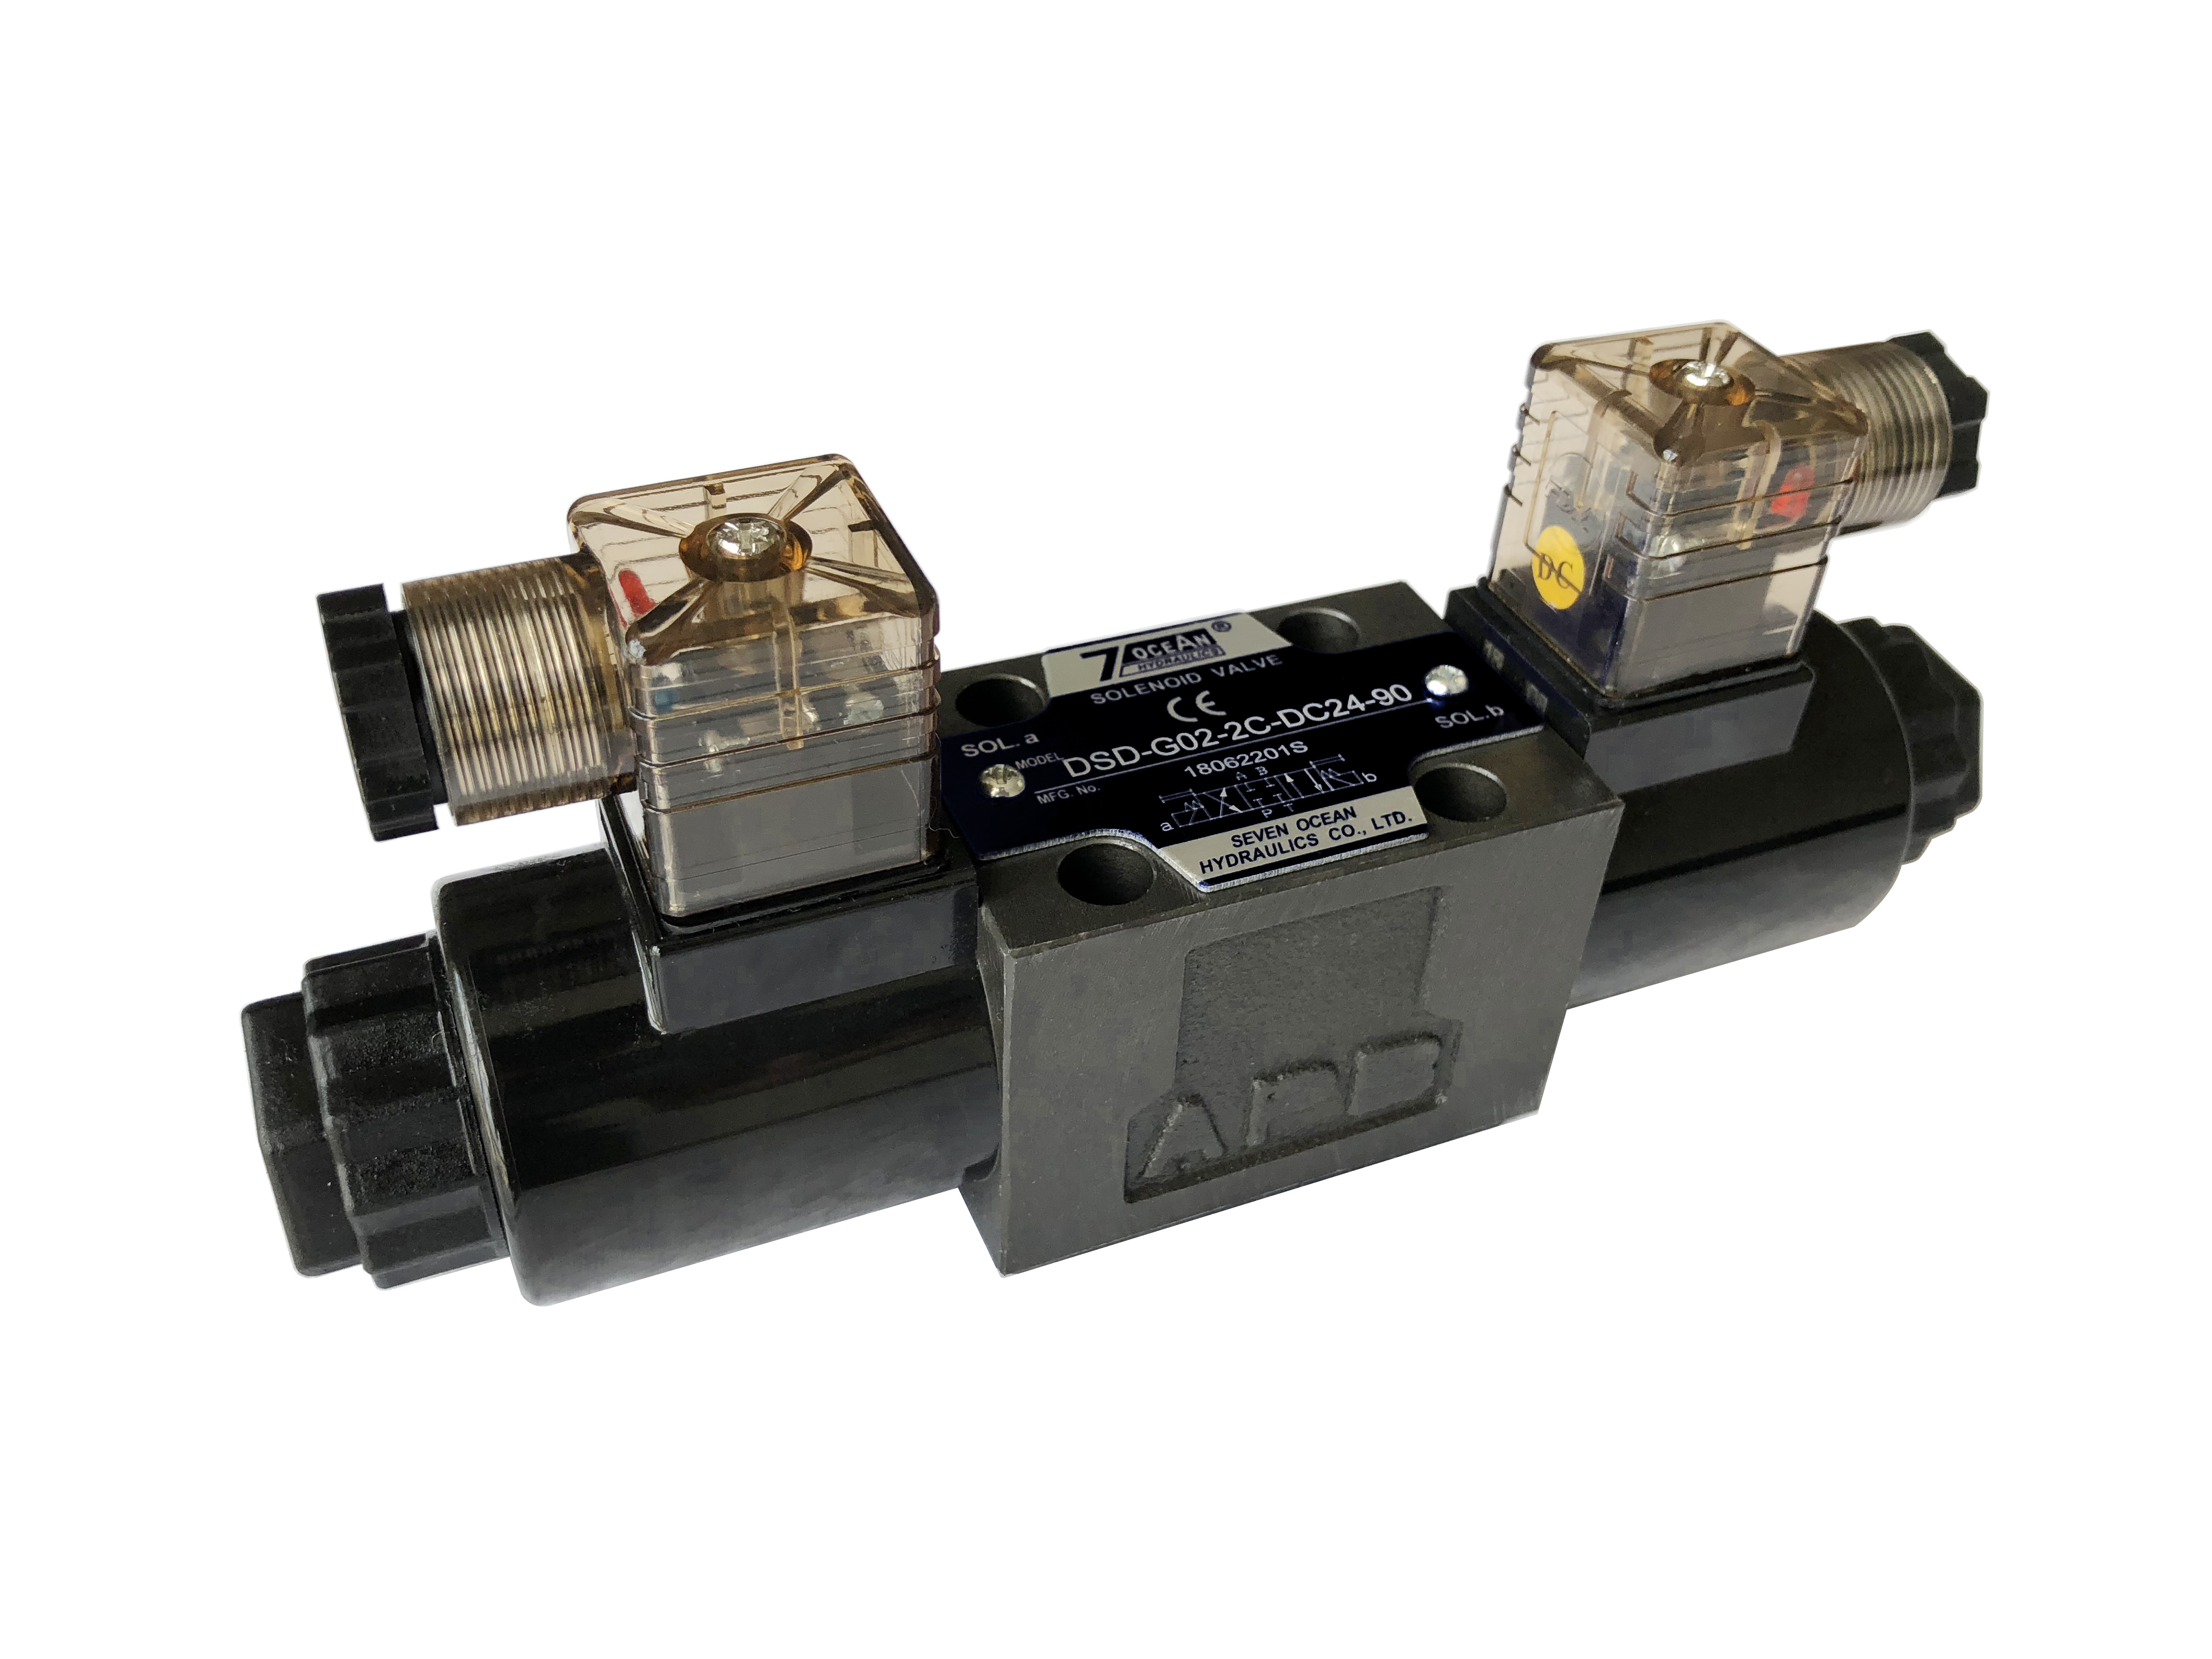 DSV/DSD-G02 Solenoid Operated Directional Control Valve